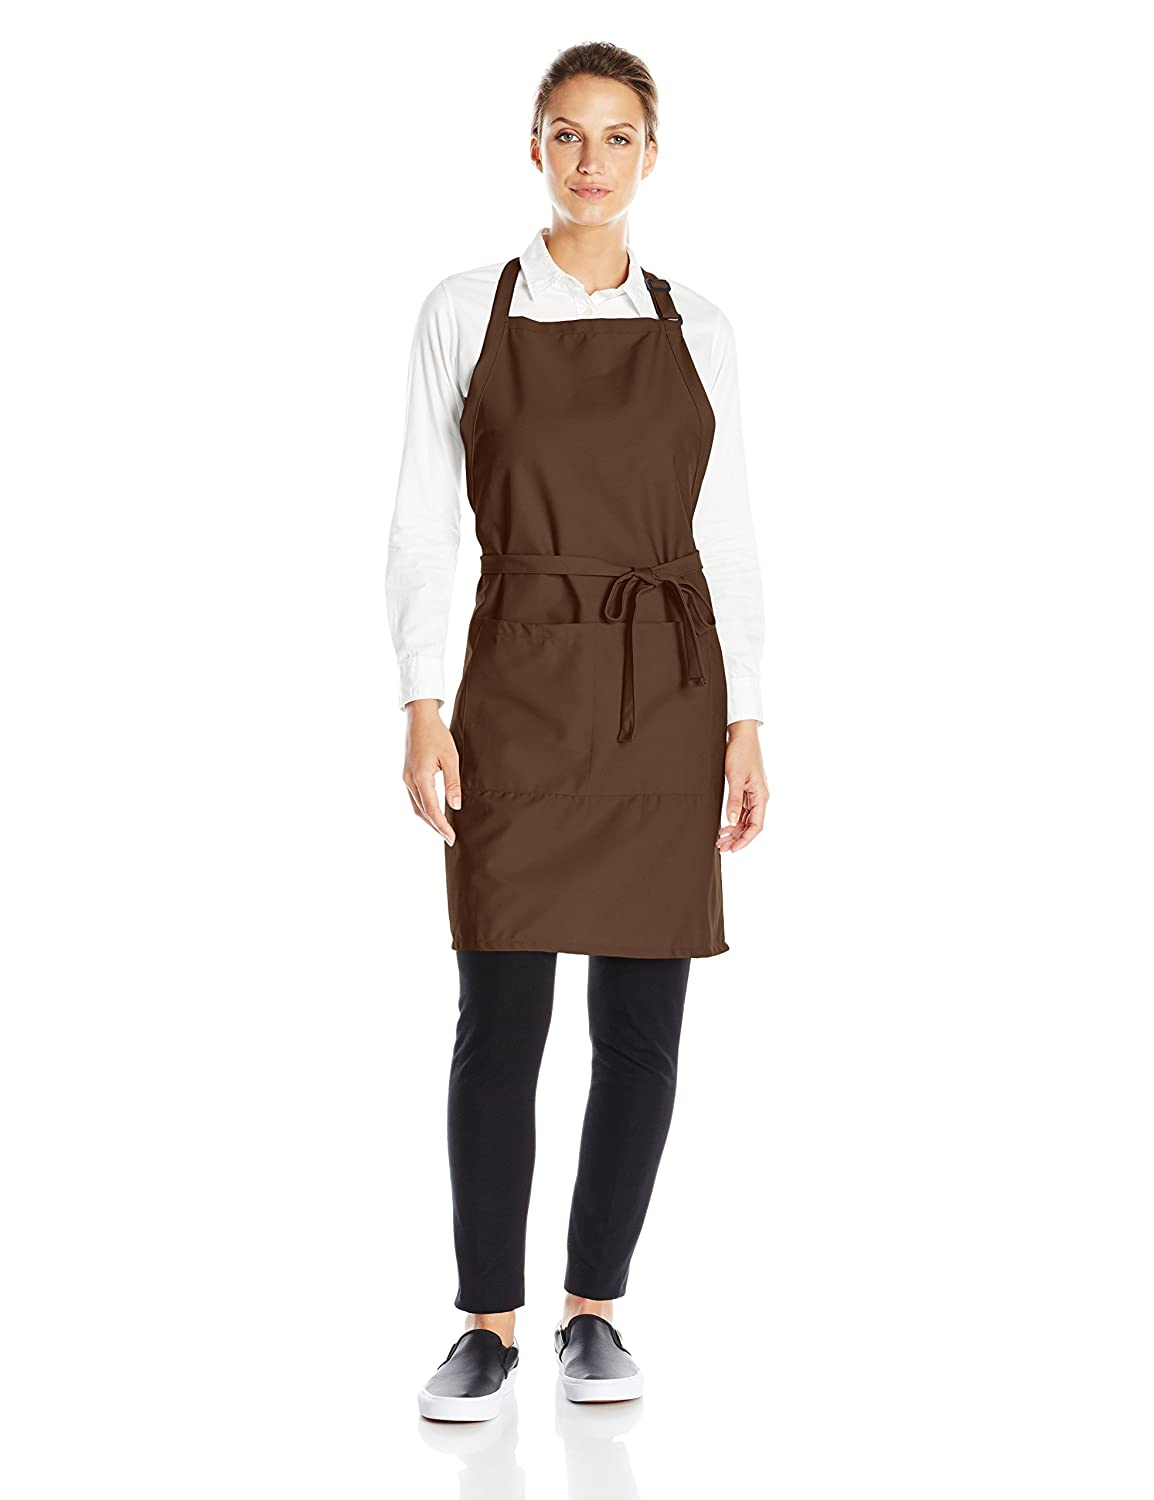 Uncommon Threads Women's ADJ Butcher Apron 2 Section Pocket Black One Size 3018-0100